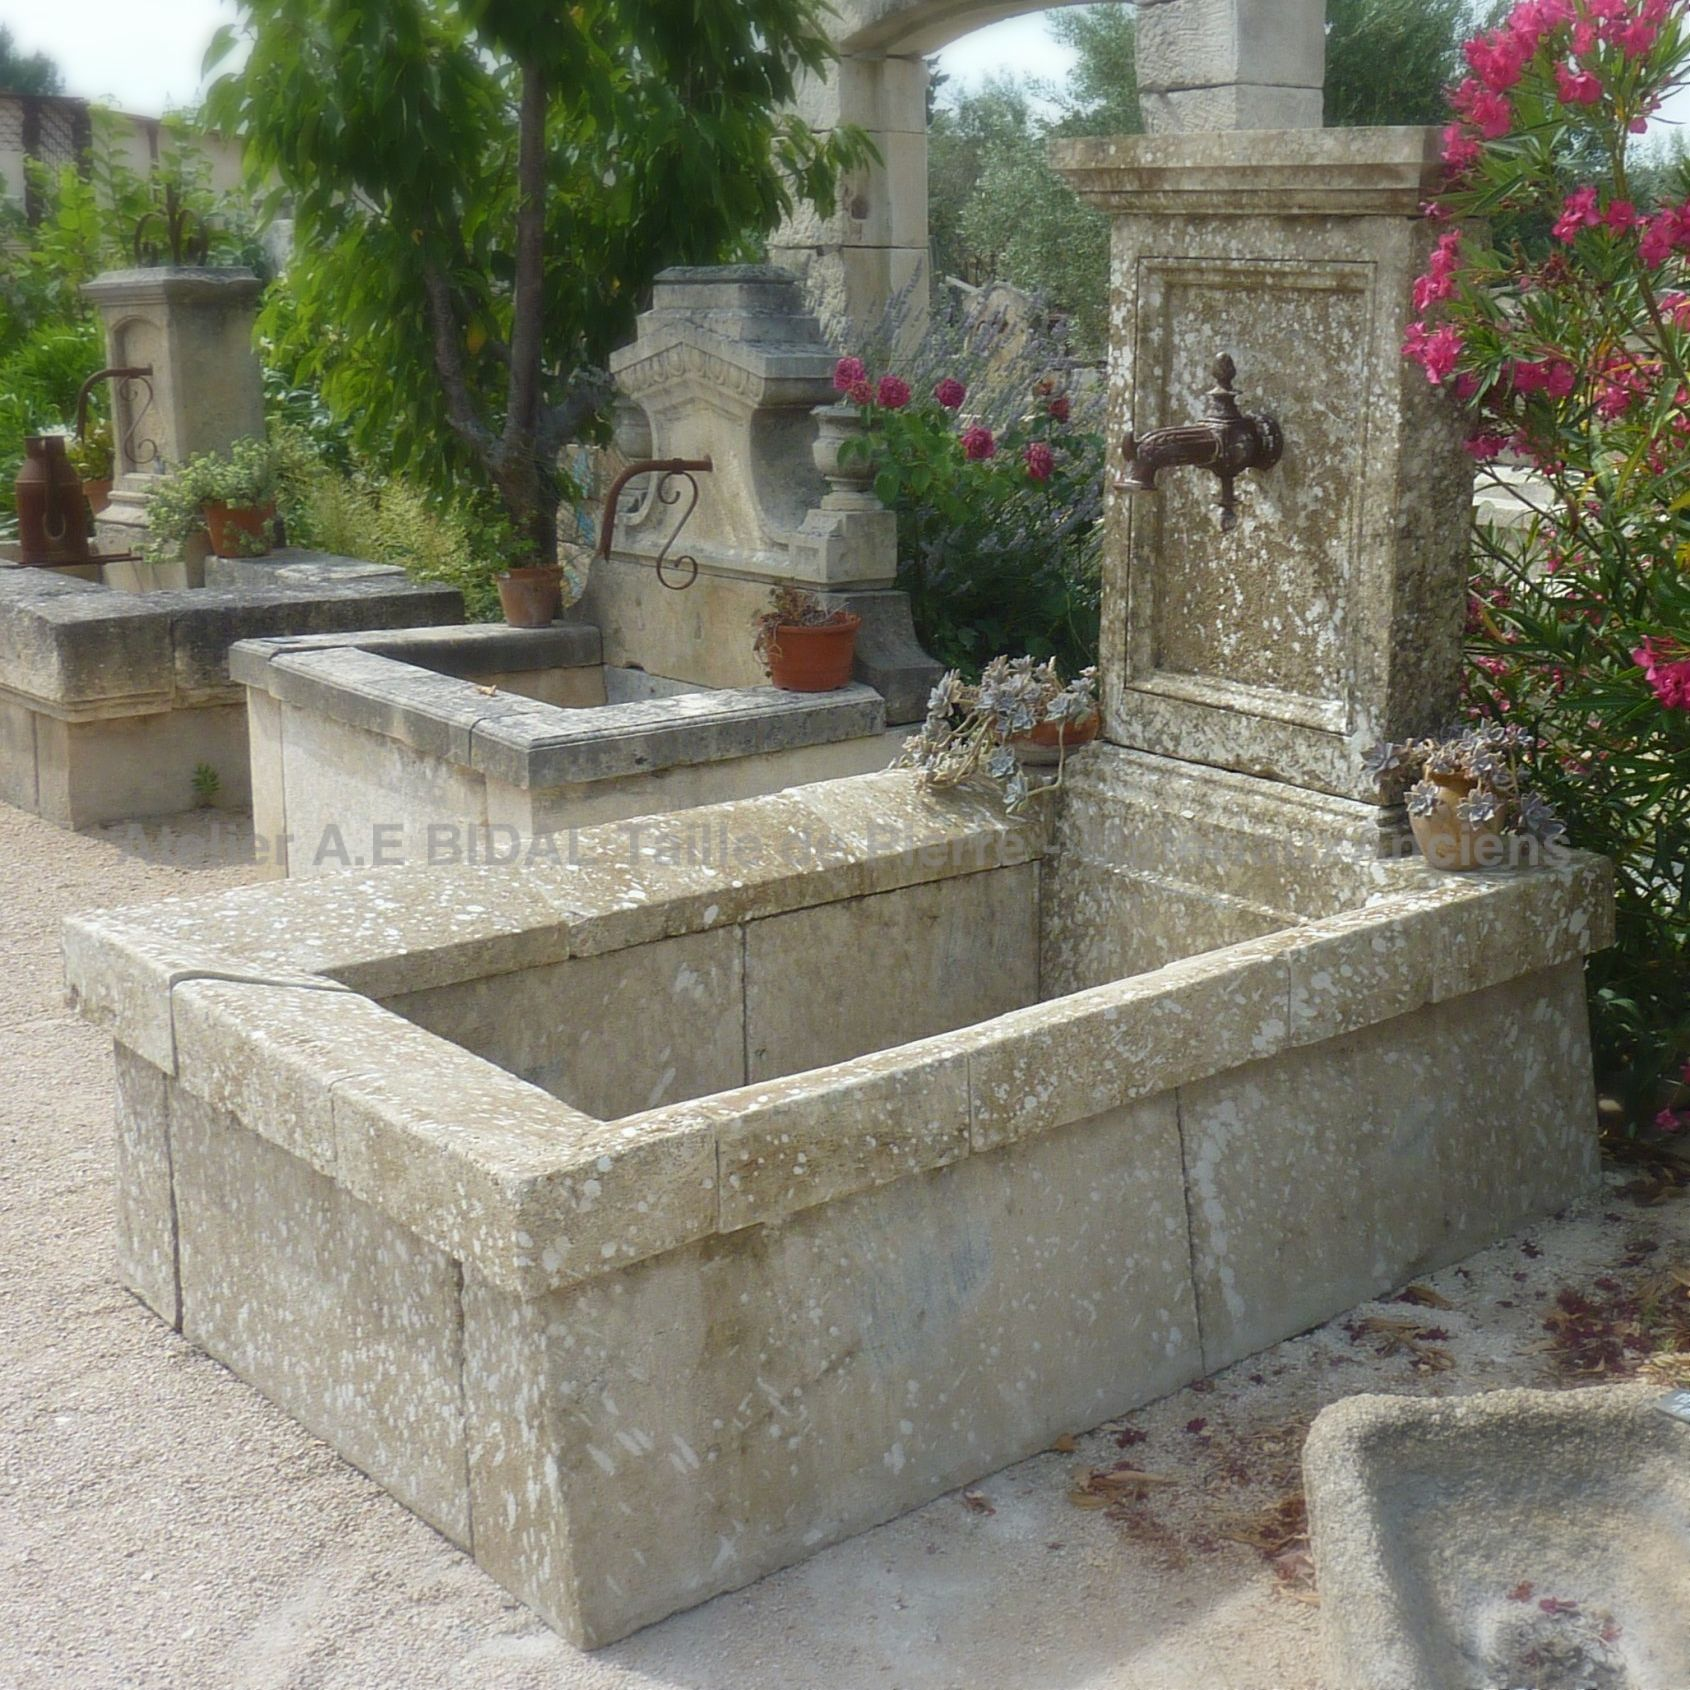 Large stone wall fountain : an outdoor fountain with wash-house-like basin in ancient stones.